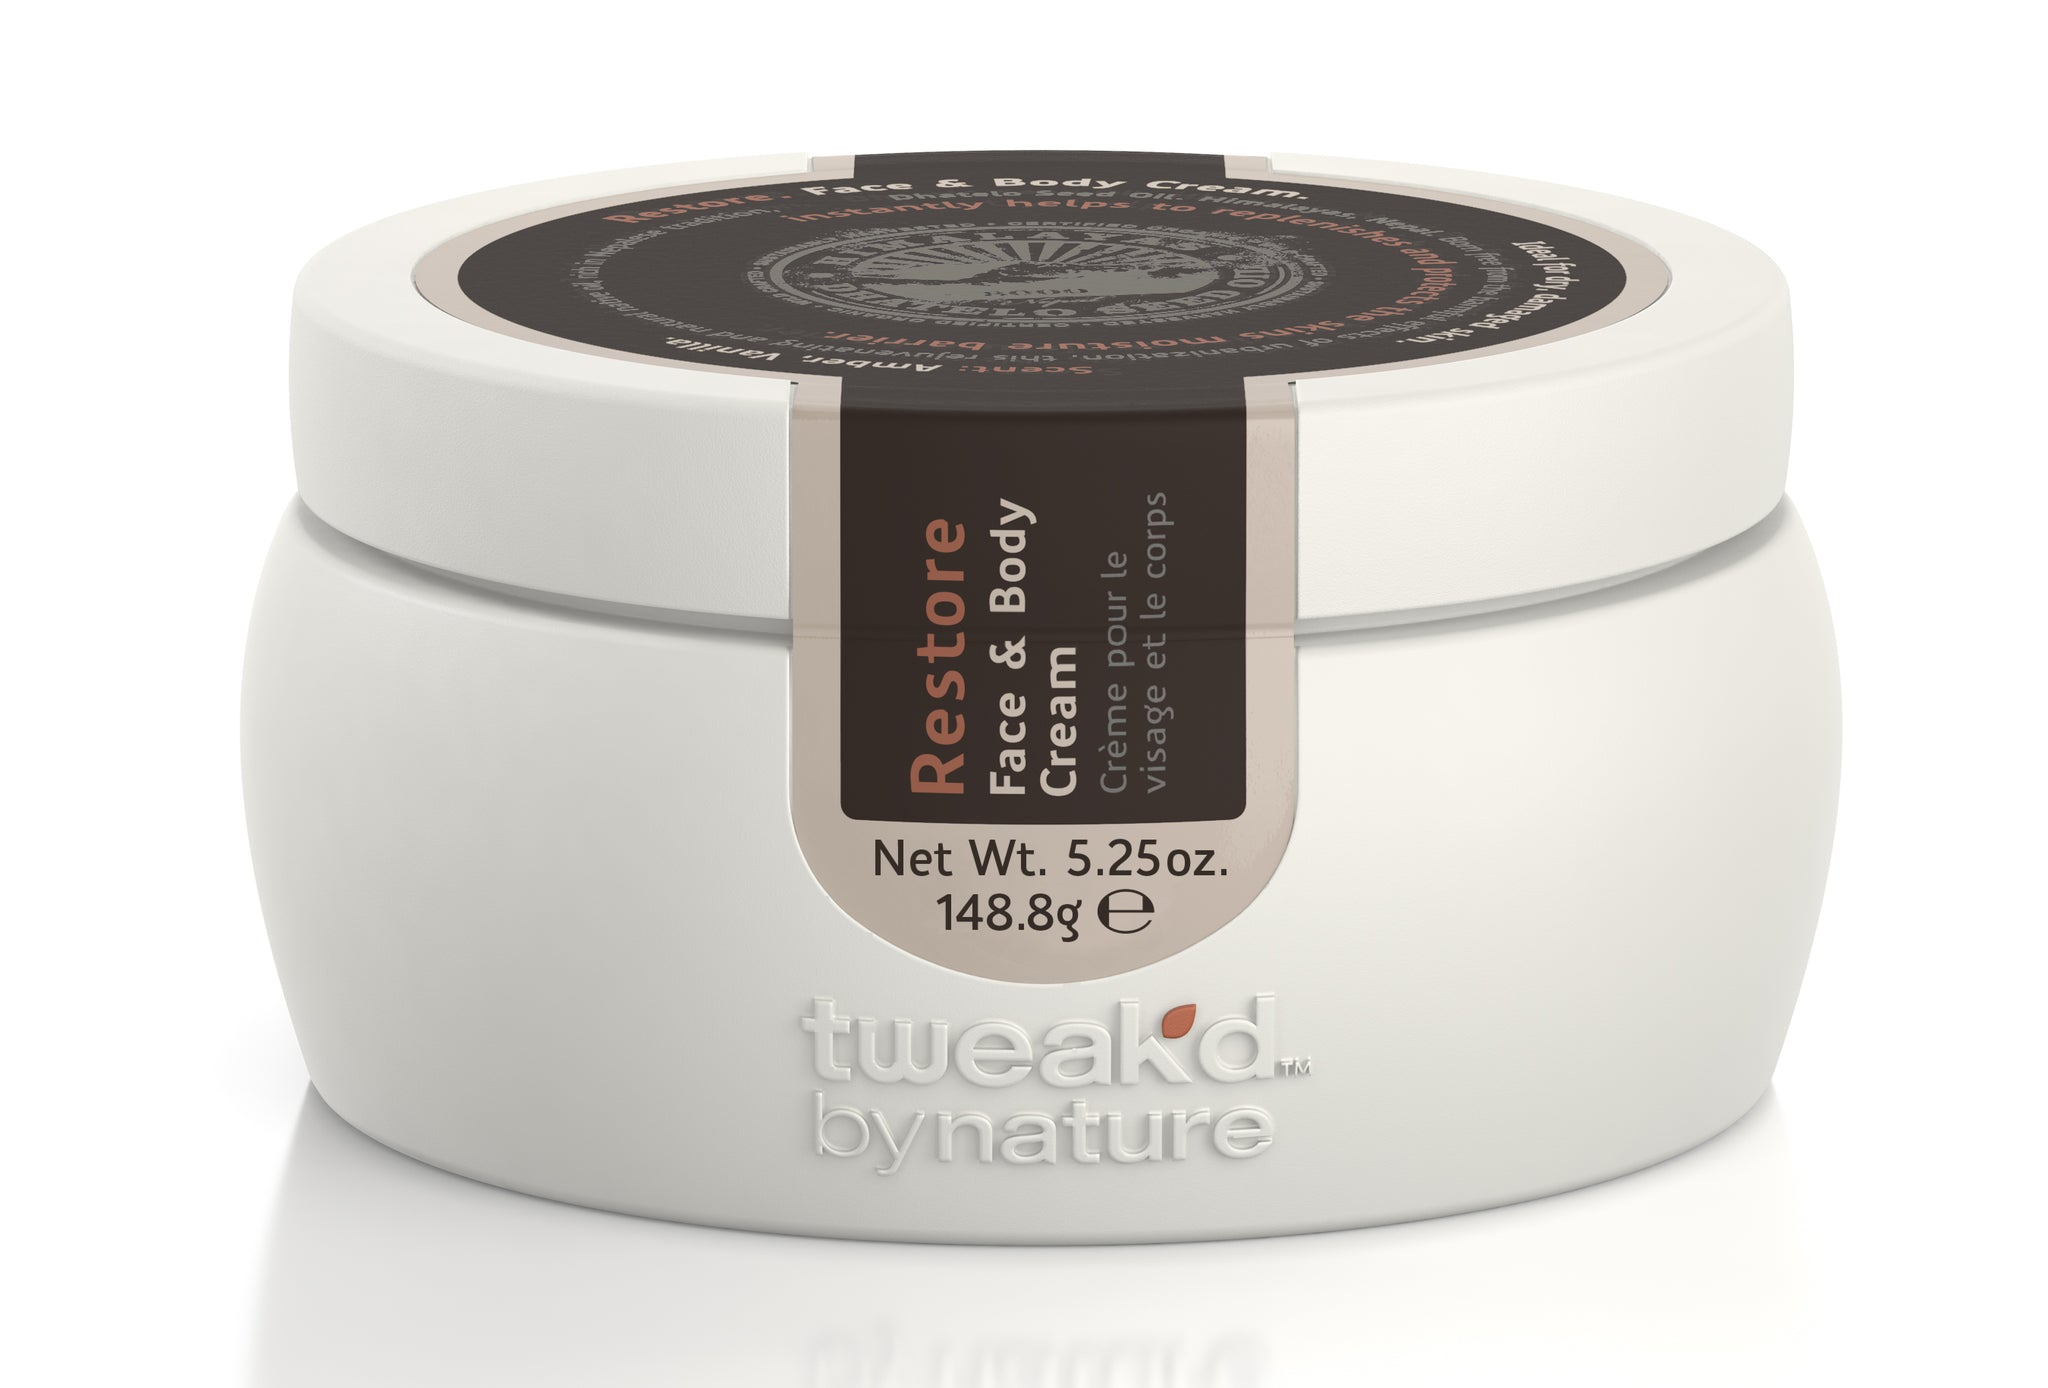 Tweak'd by Nature Restore Dhatelo All Purpose Face and Body Cream